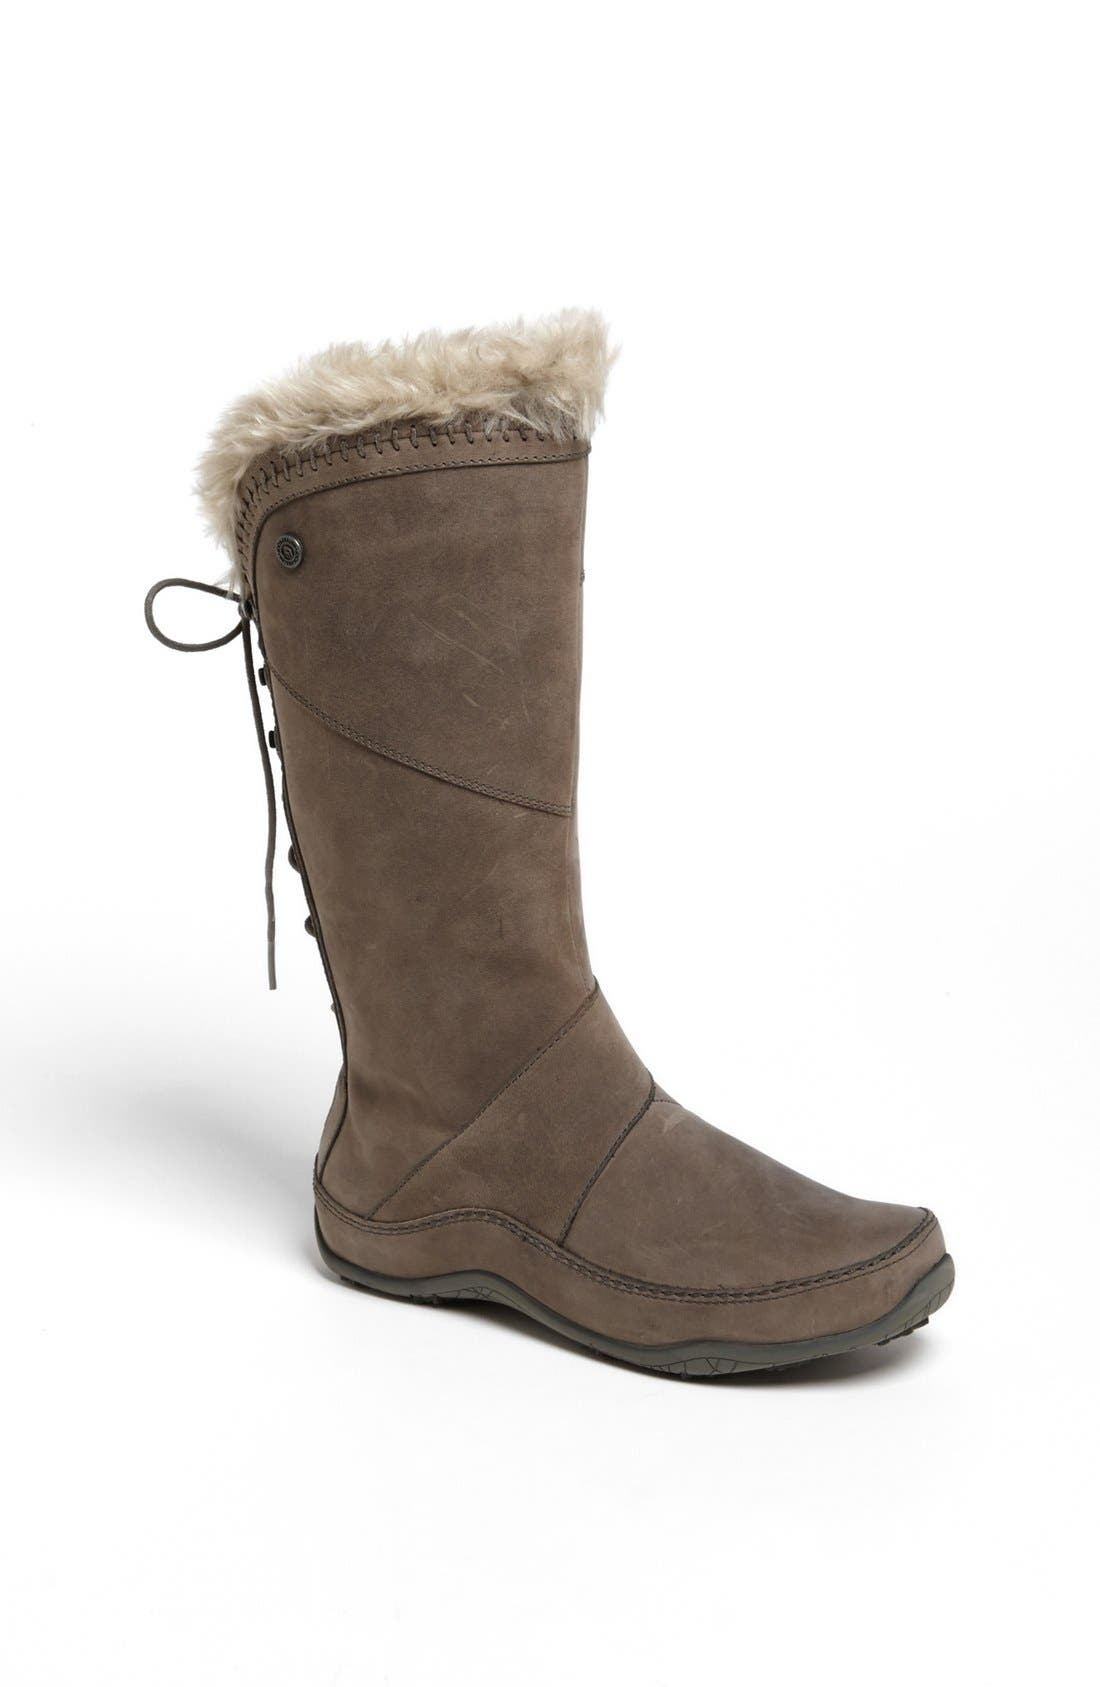 Alternate Image 1 Selected - The North Face 'Janey II Luxe' Waterproof Boot